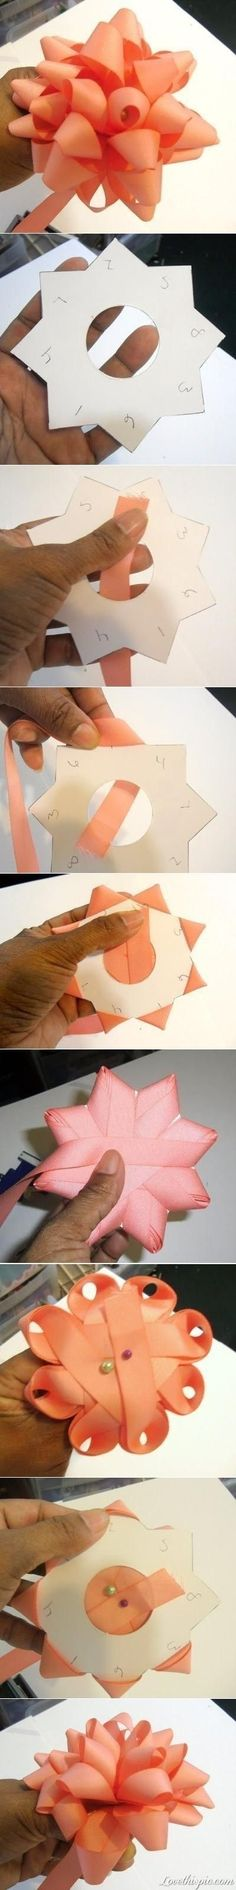 DIY Bow Ribbon diy crafts easy crafts crafty easy diy diy bow craft bow diy gifts